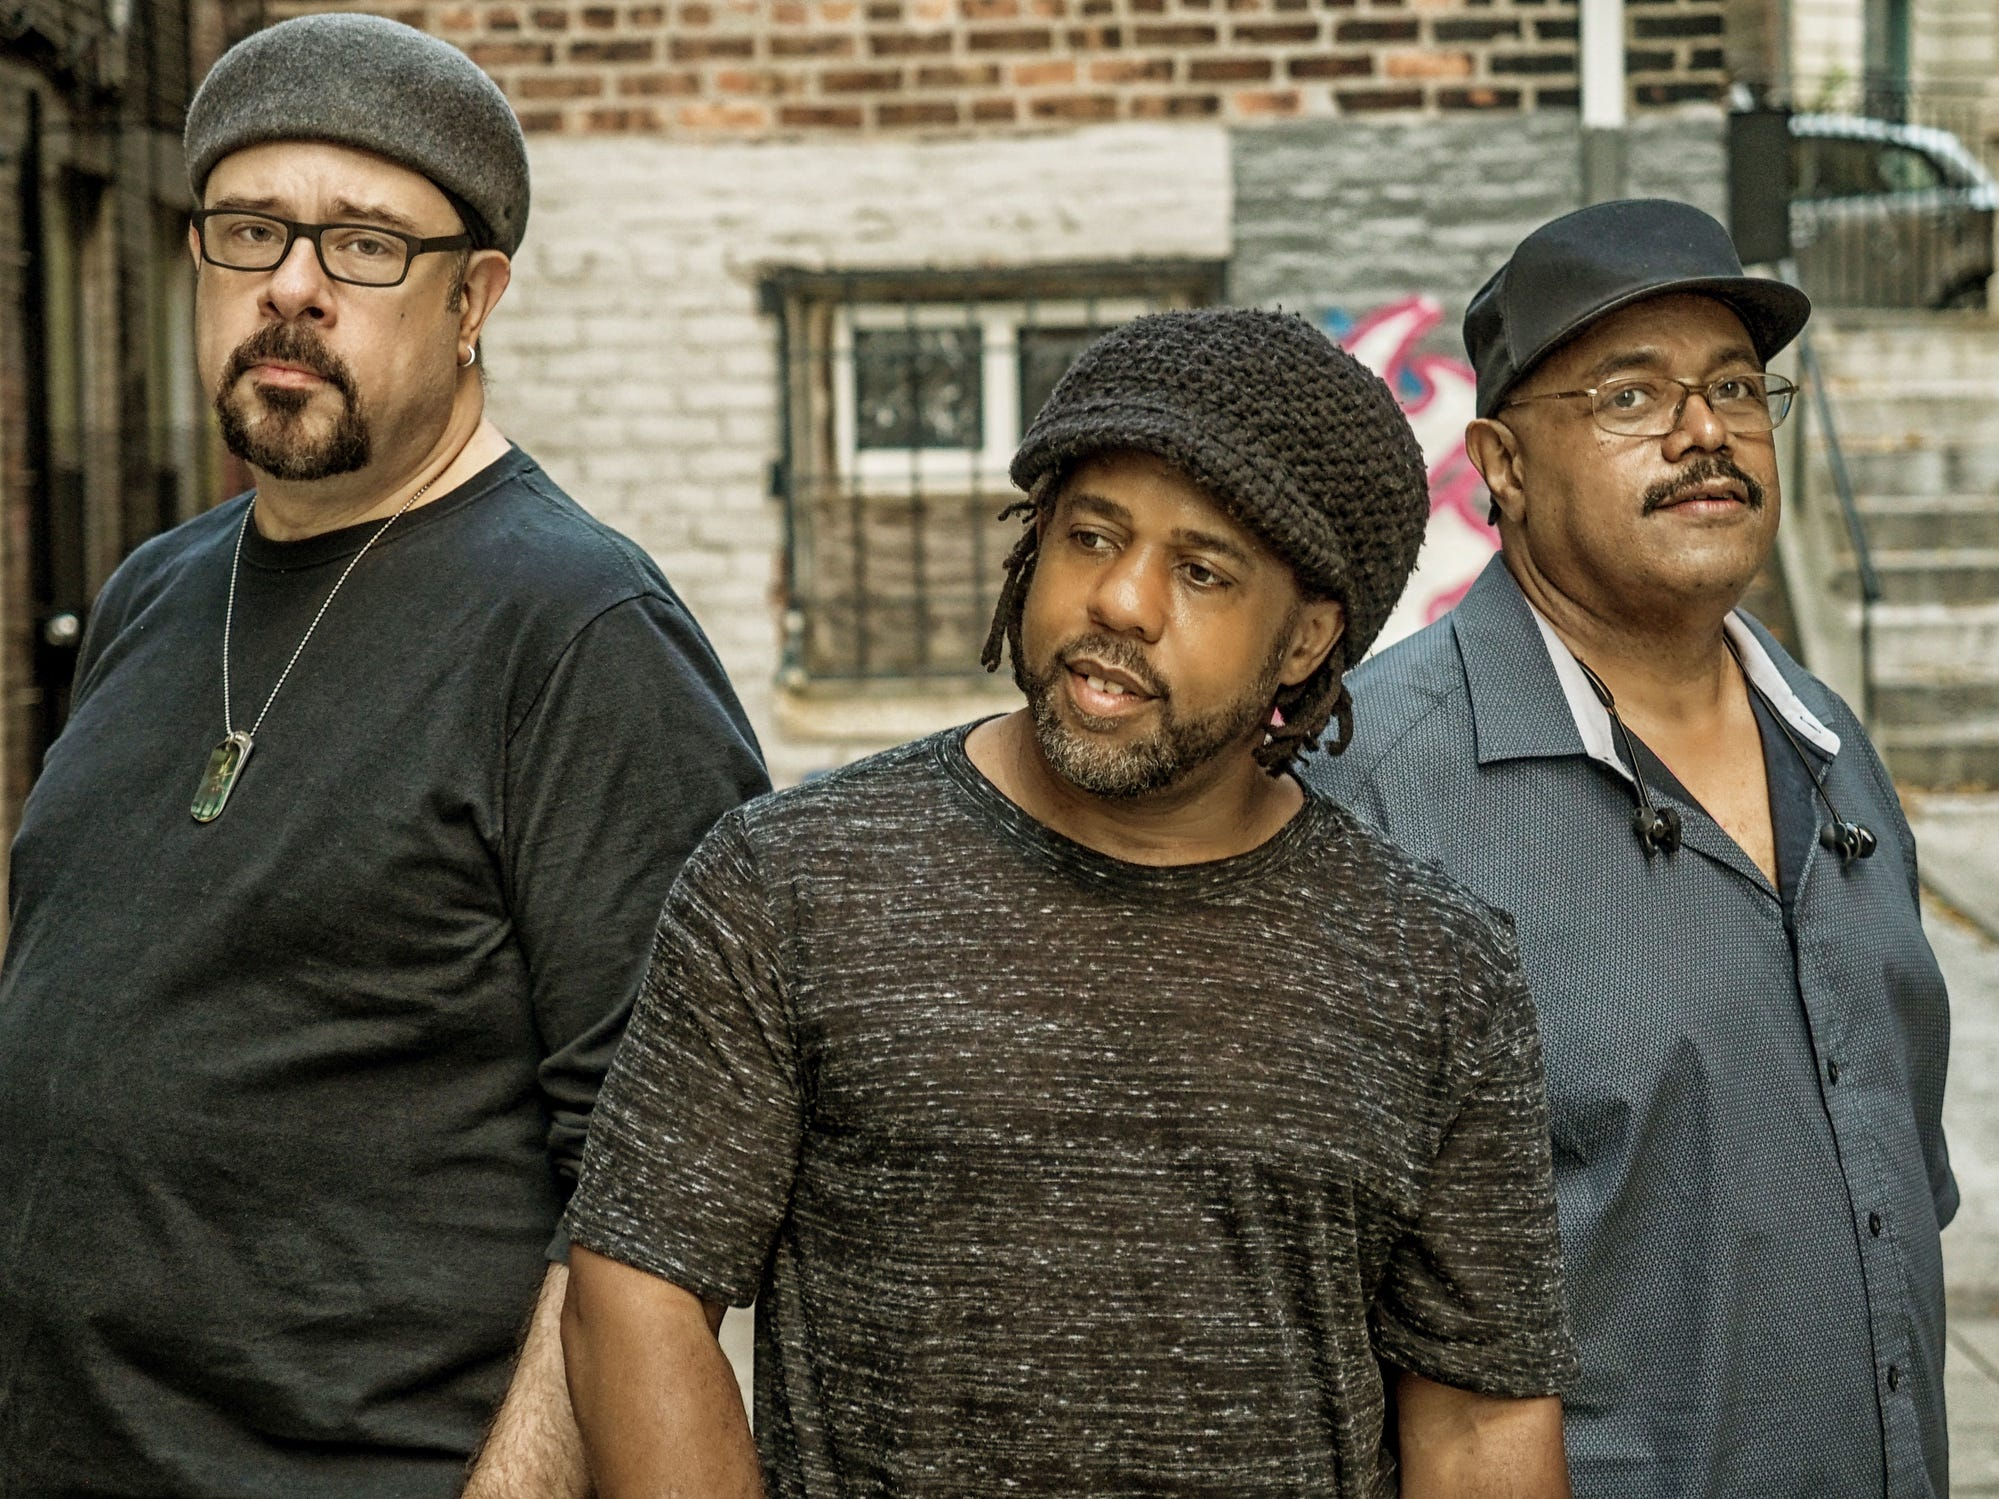 April 15THE VICTOR WOOTEN BAND AND THE VICTOR WOOTEN WOODS EXPERIENCE: 8 p.m. City Winery, $30-$45, citywinery.com/nashville